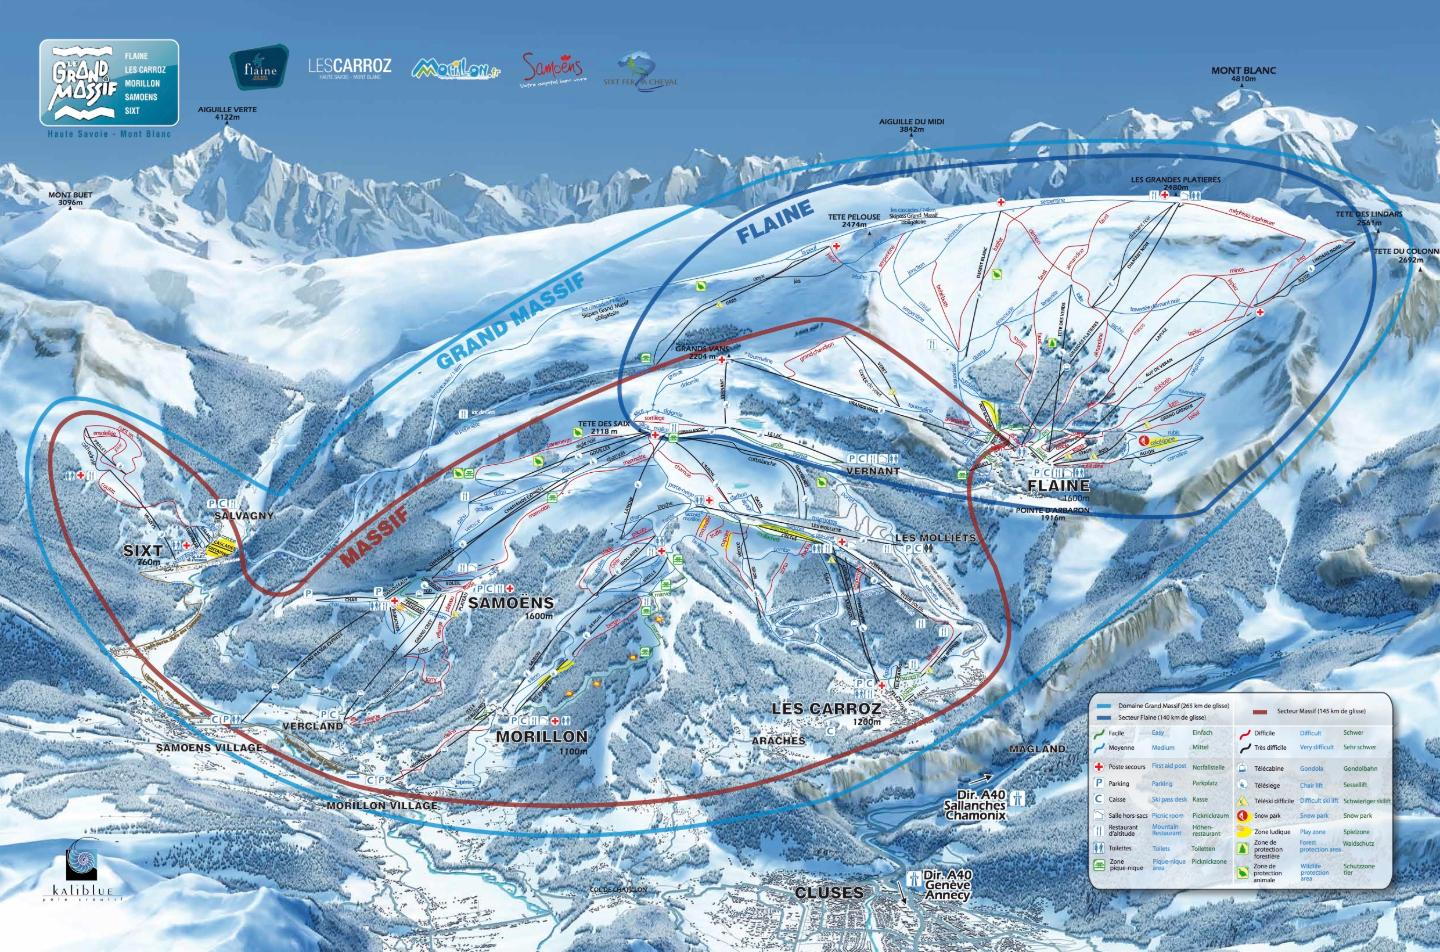 Grand-Massif-Piste-Map12